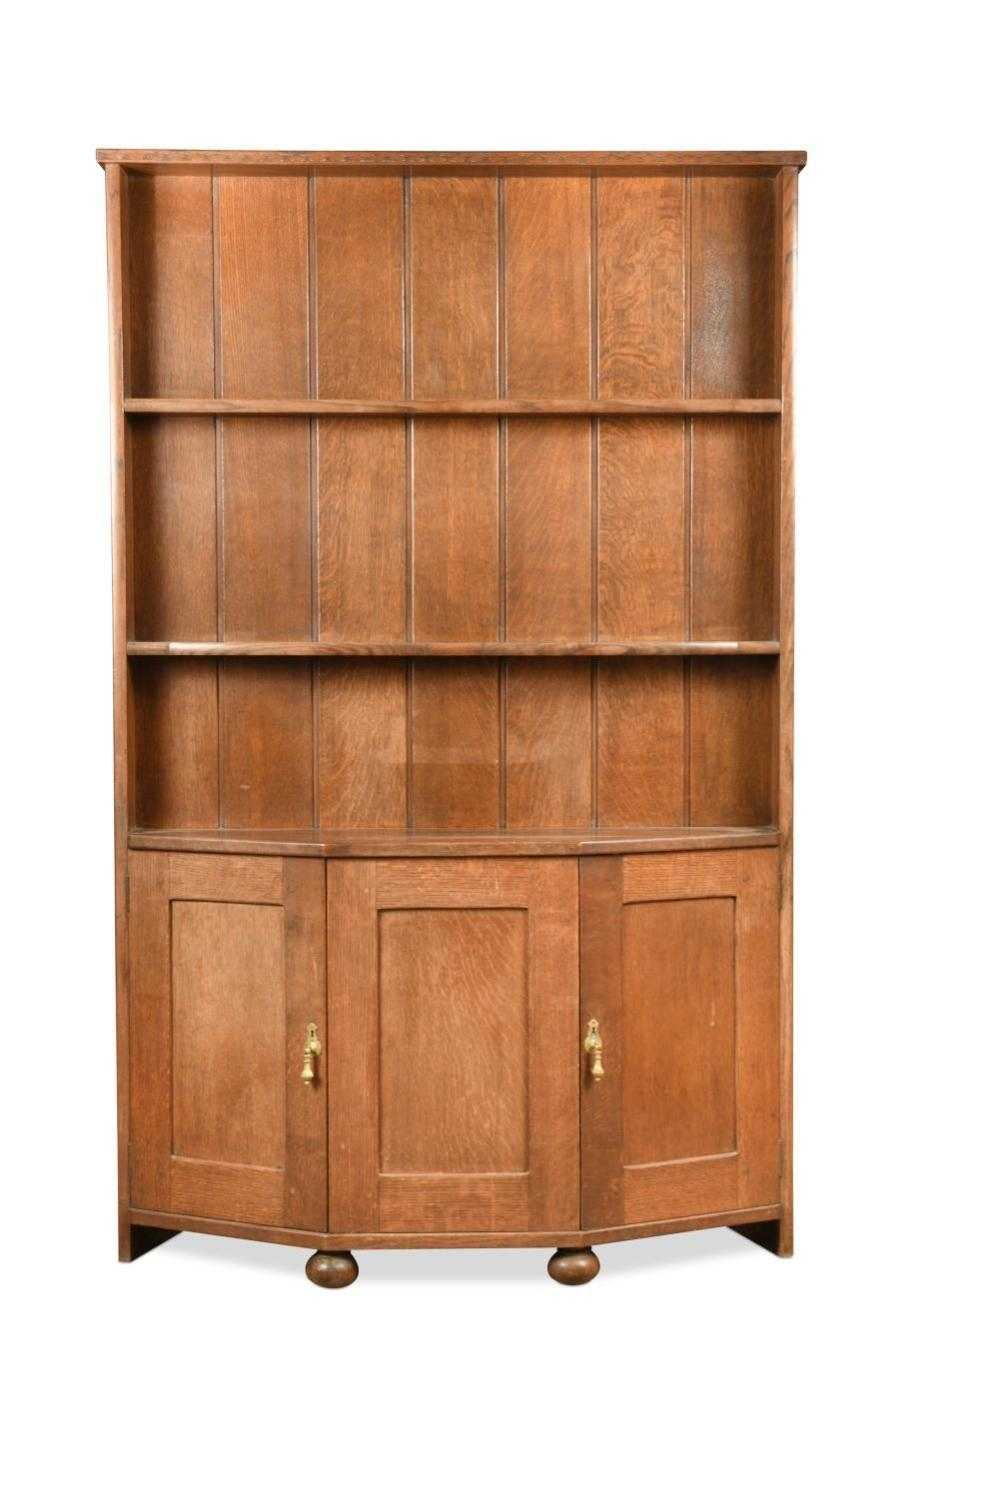 Attributed to Arthur Romney Green, a Cotswold style oak dresser, circa 1910,